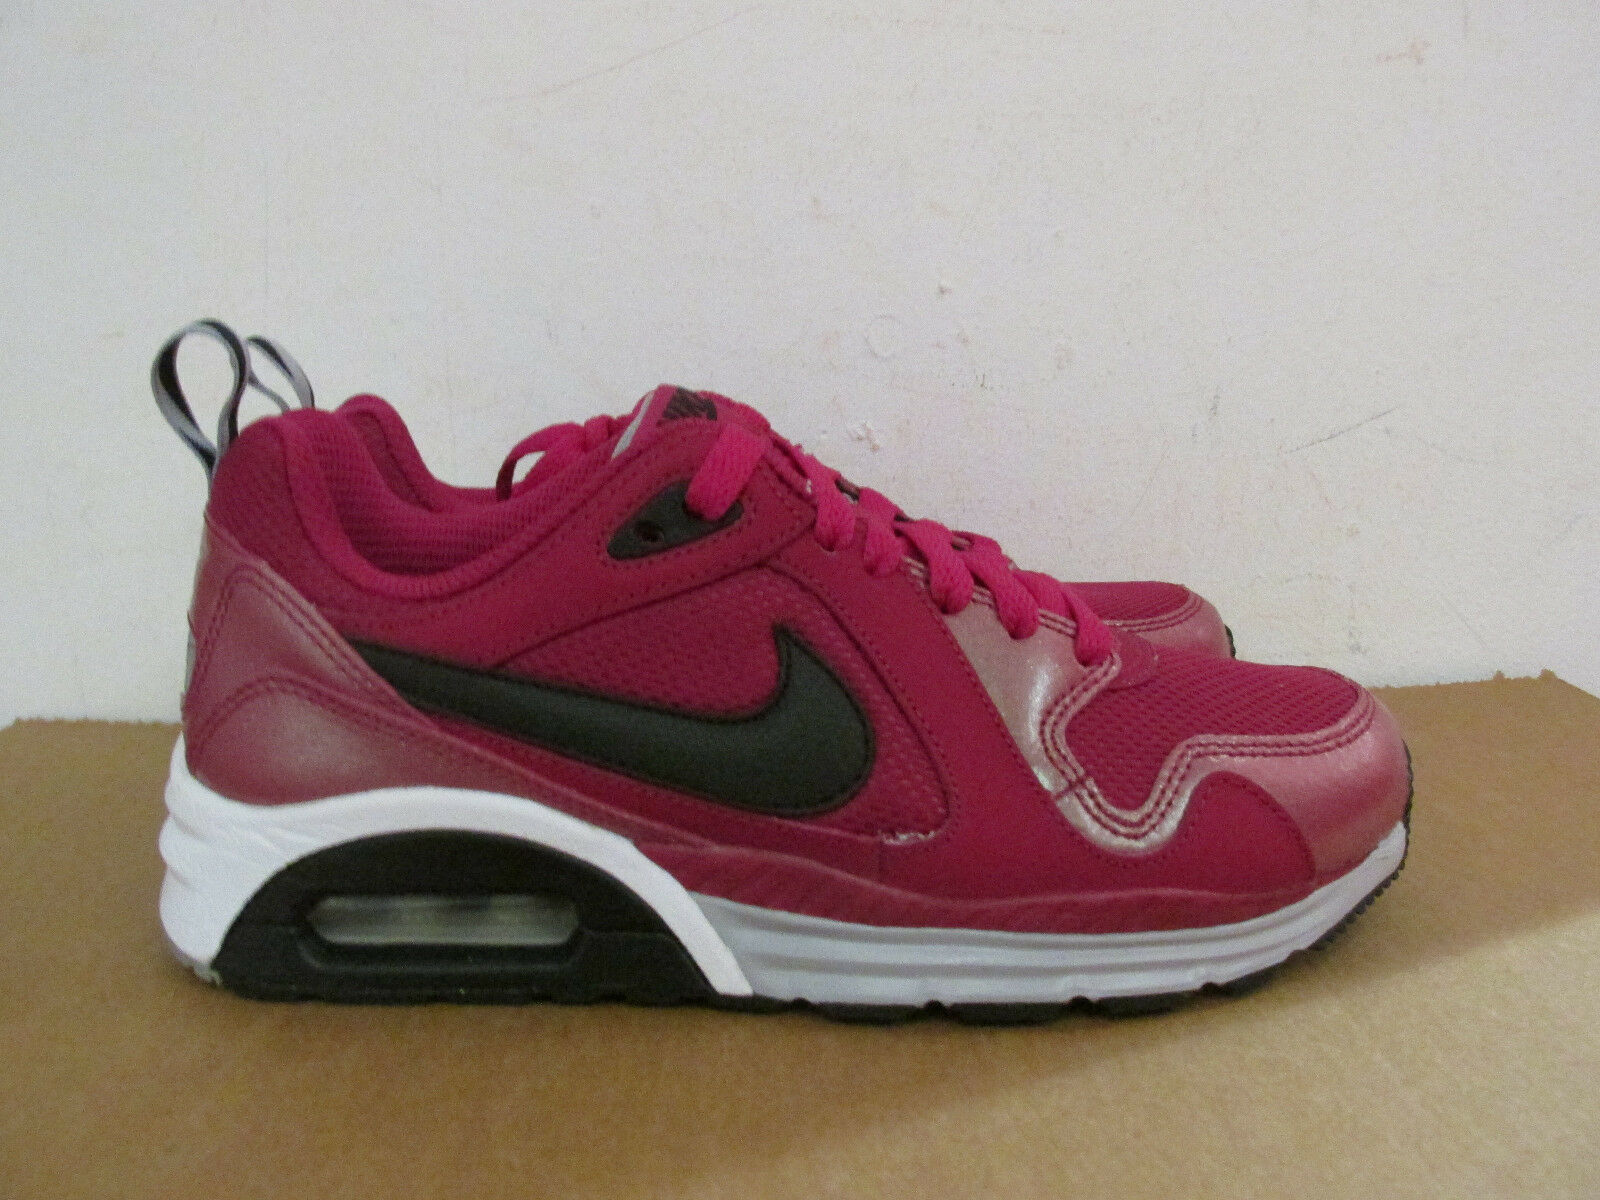 Nike Womens Air Max Trax Running Trainers 631763 500 500 500 Sneakers shoes CLEARANCE 871854